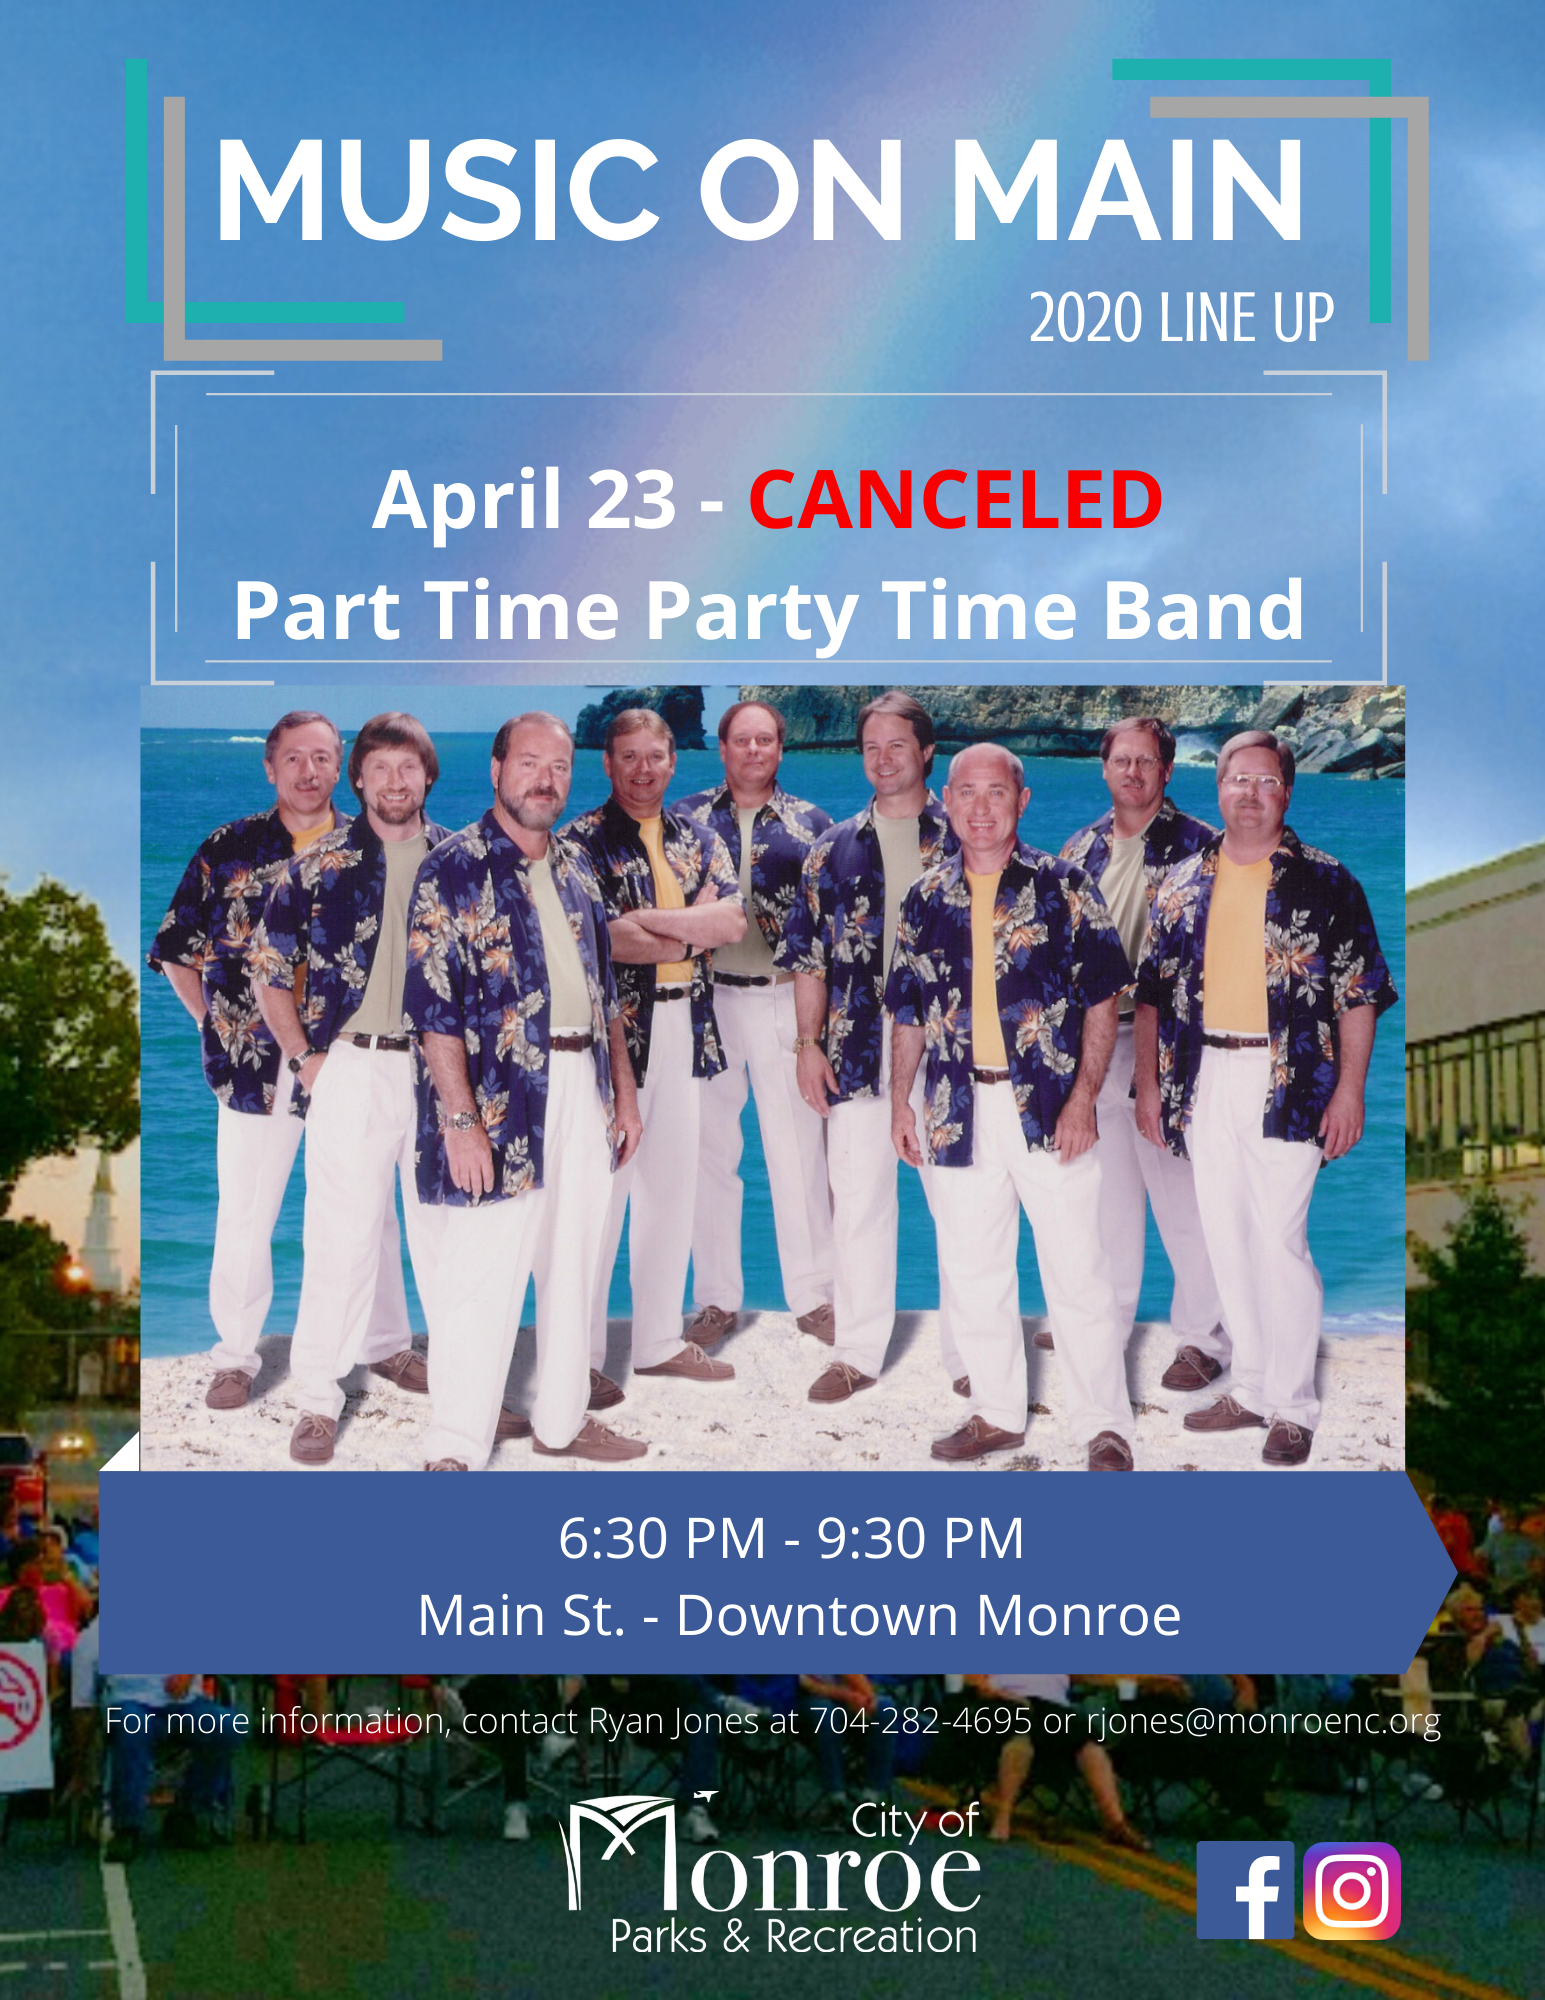 April 23rd Music on Main is canceled